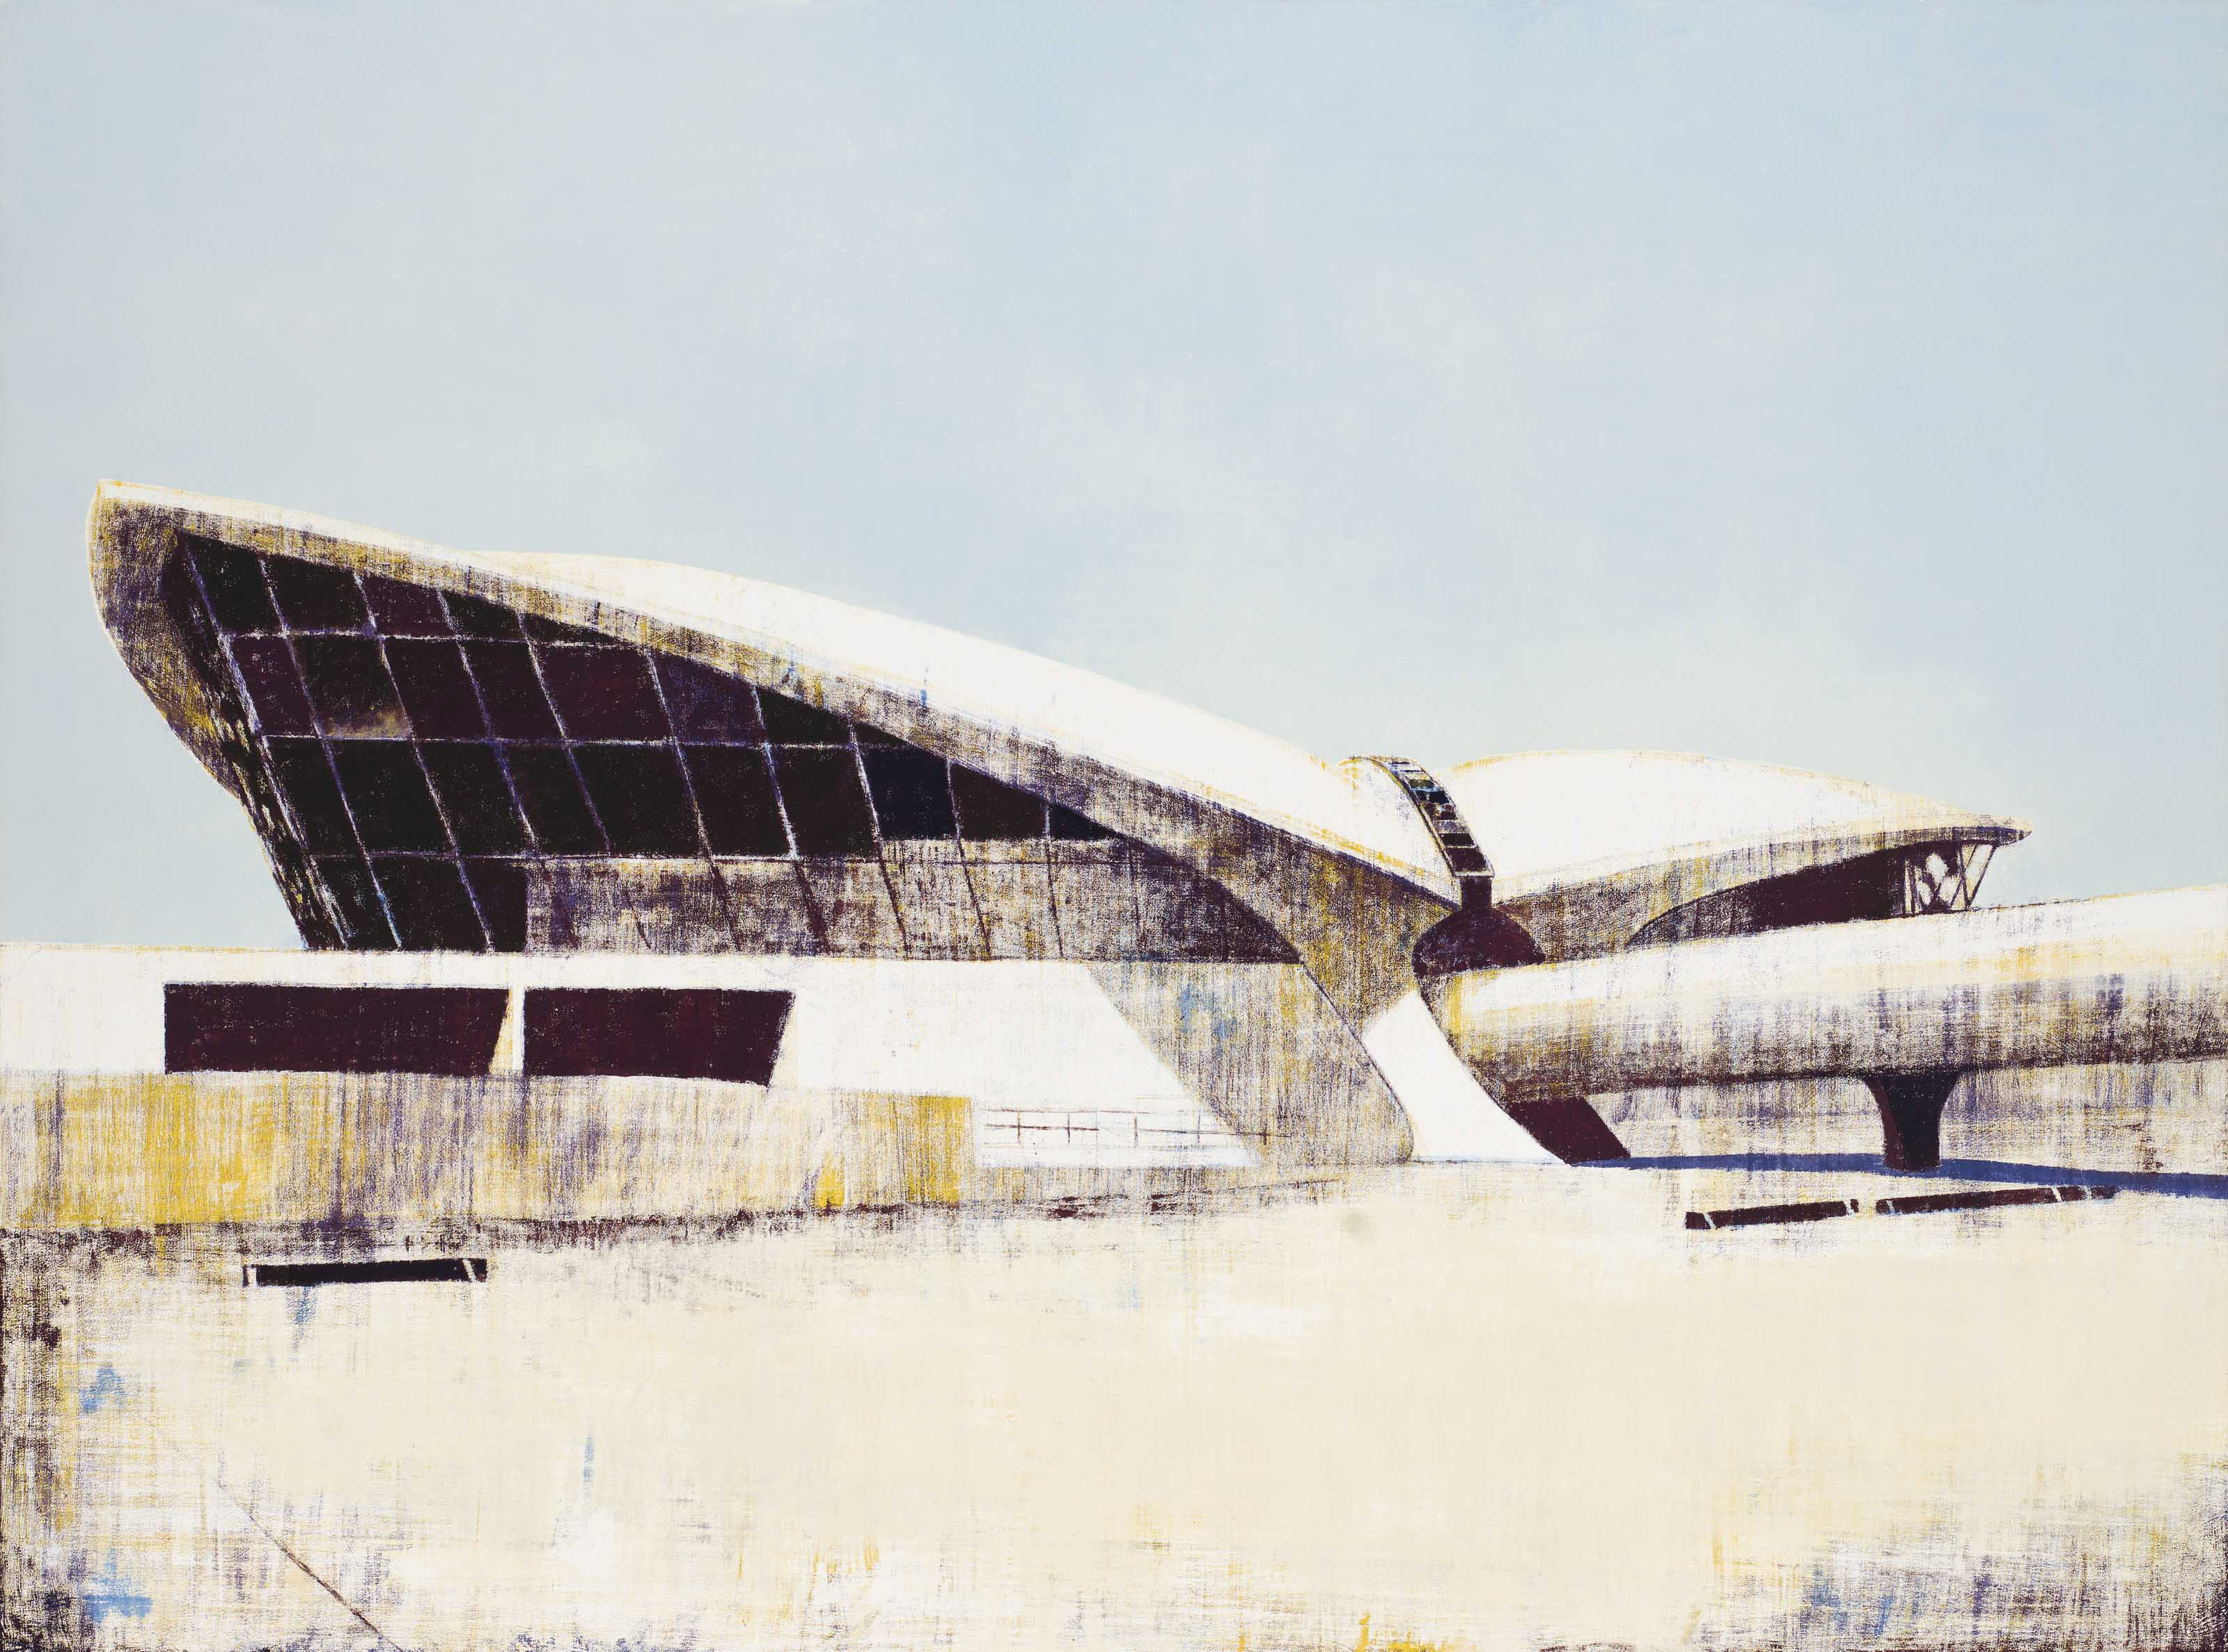 TWA Terminal, Kennedy Airport, New York